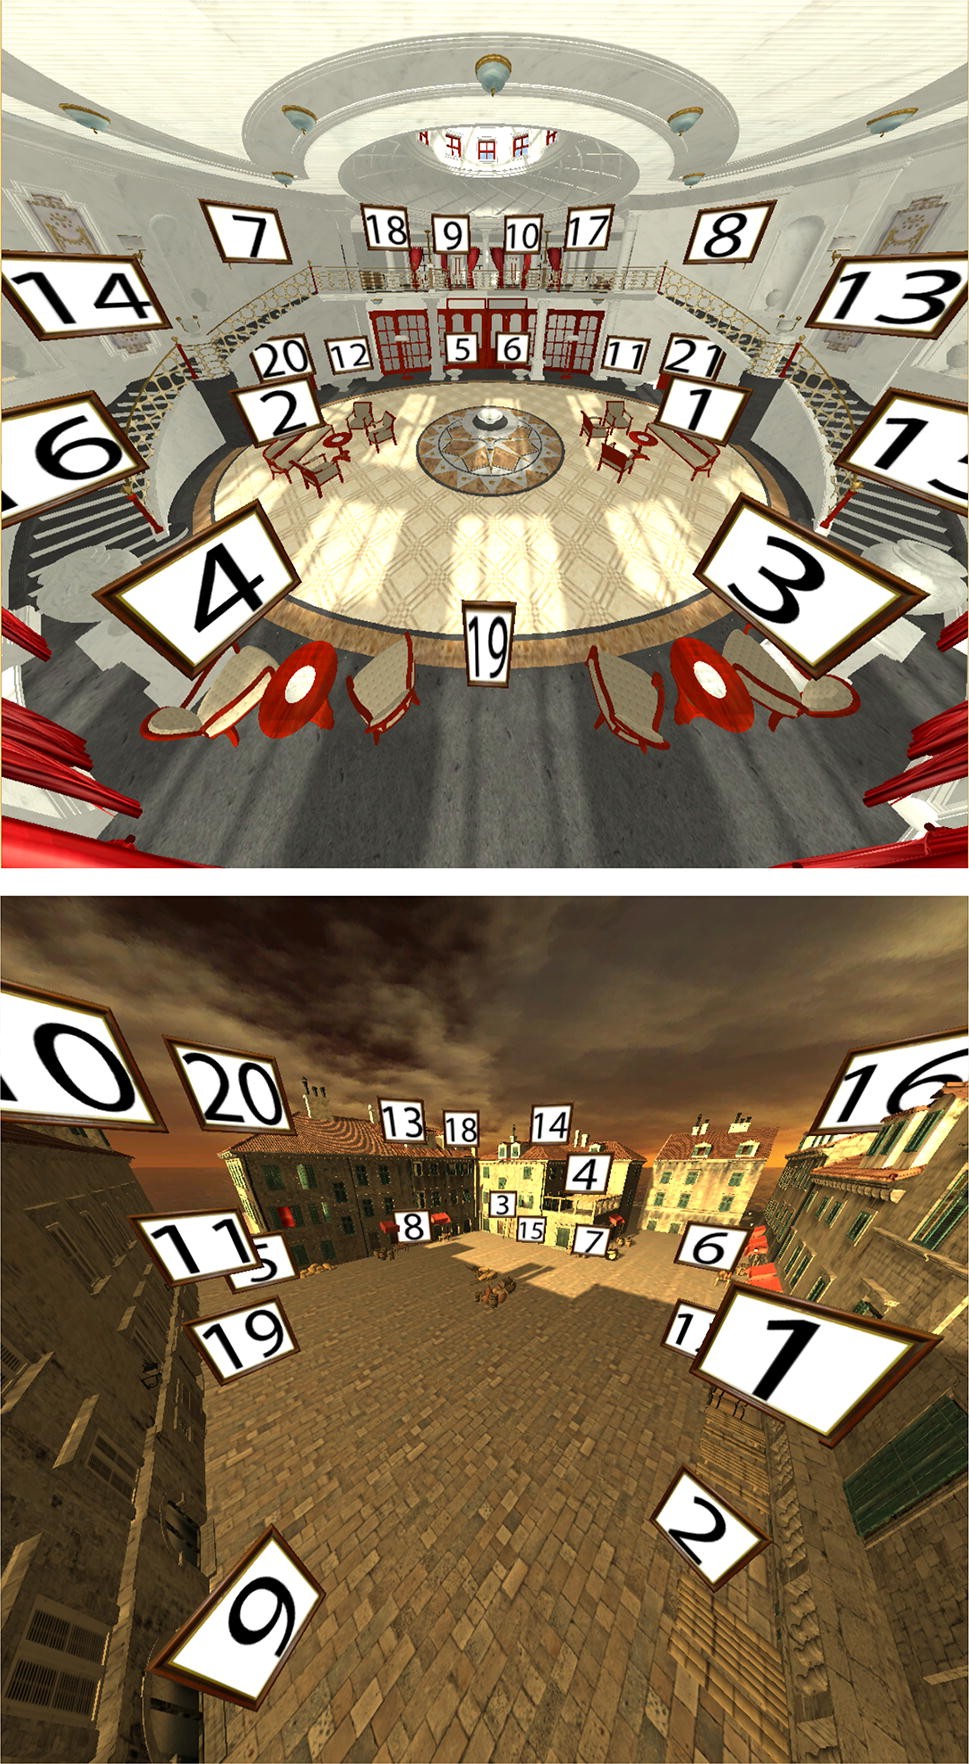 Virtual memory palaces: immersion aids recall | SpringerLink